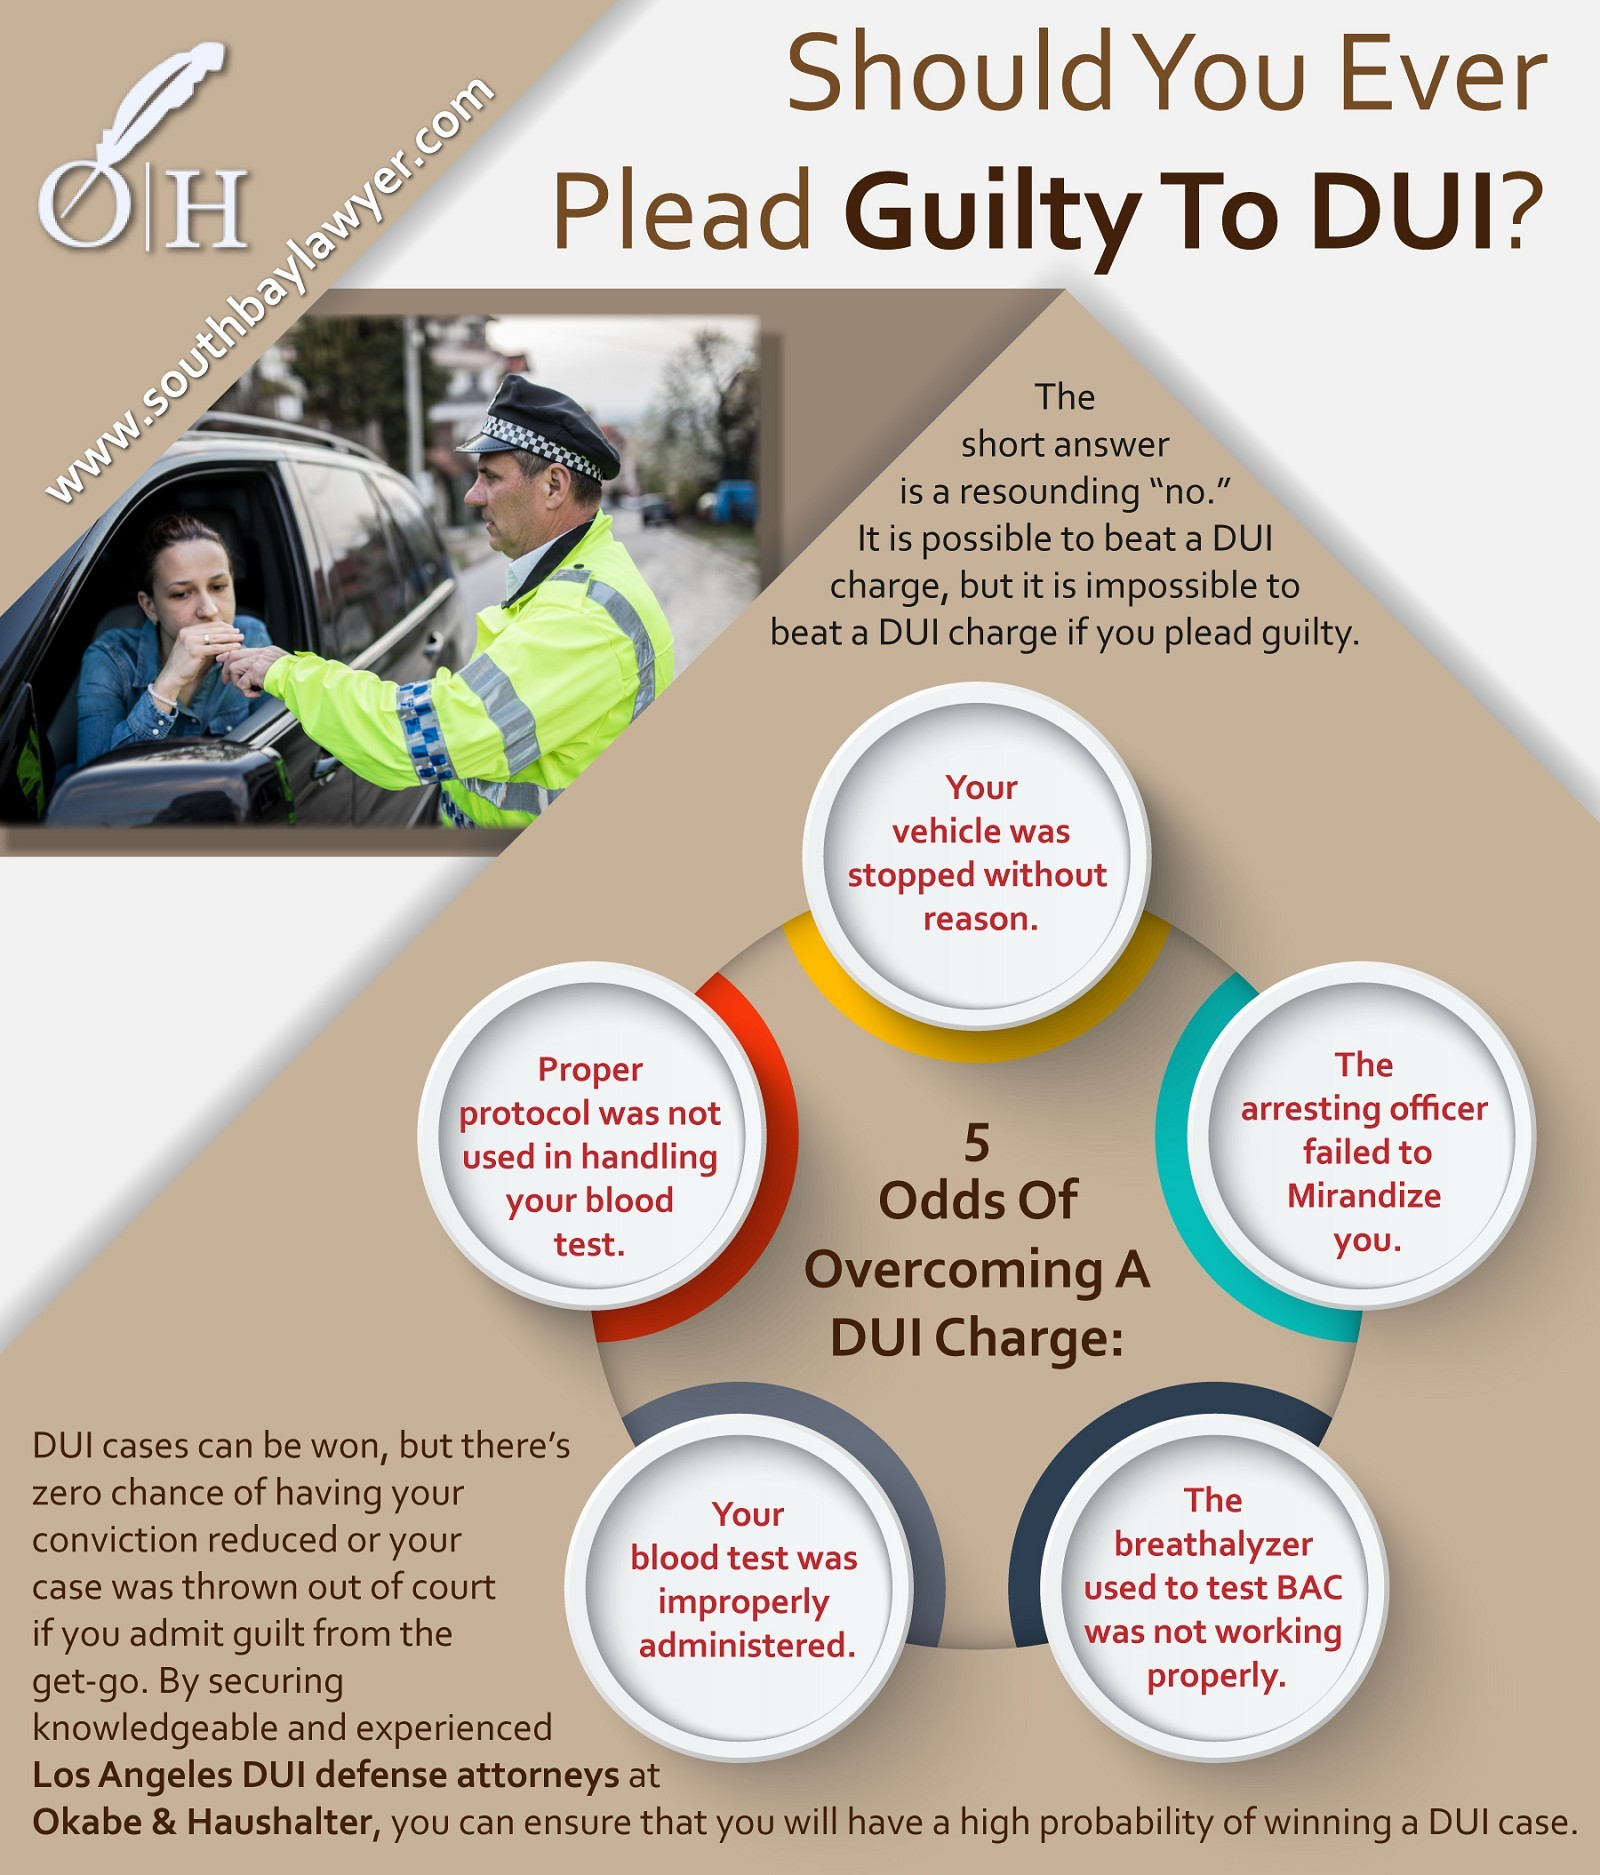 Should You Ever Plead Guilty To DUI?